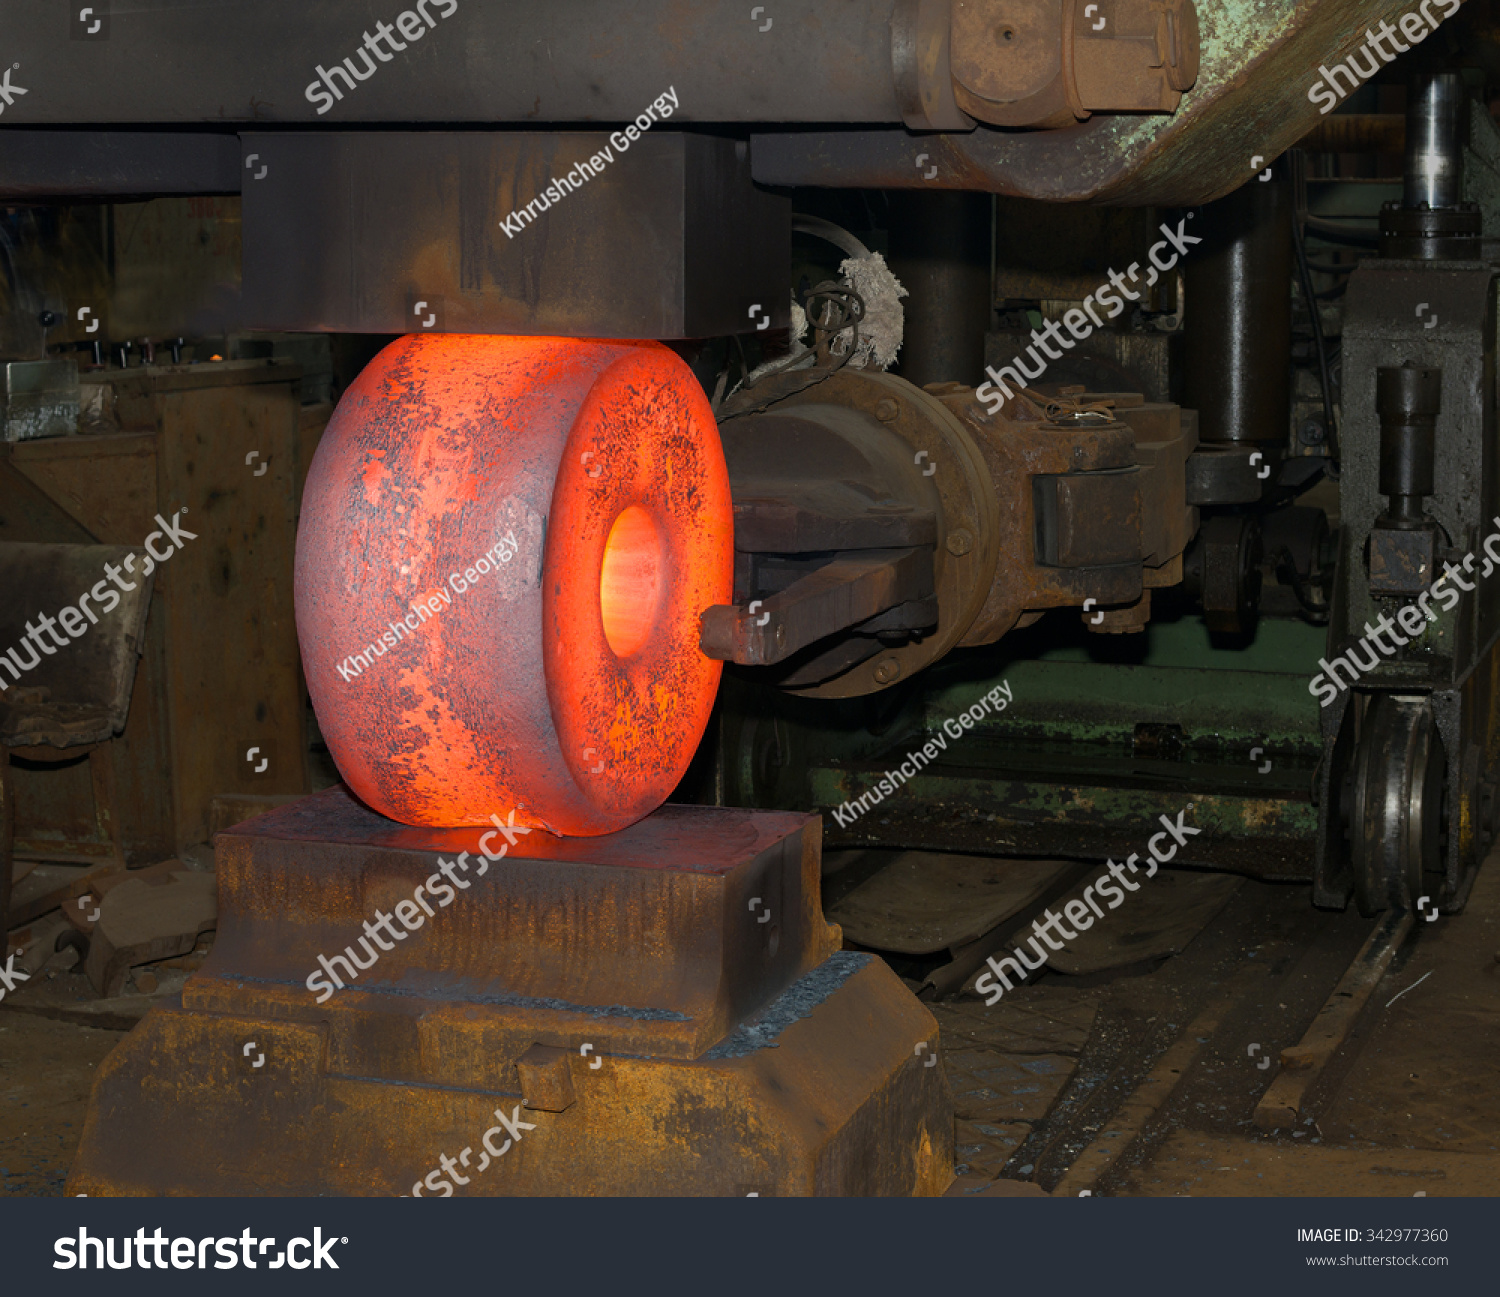 Industrial Forging Forging Very Large Redhot Billet Industrial Stock Photo Edit Now